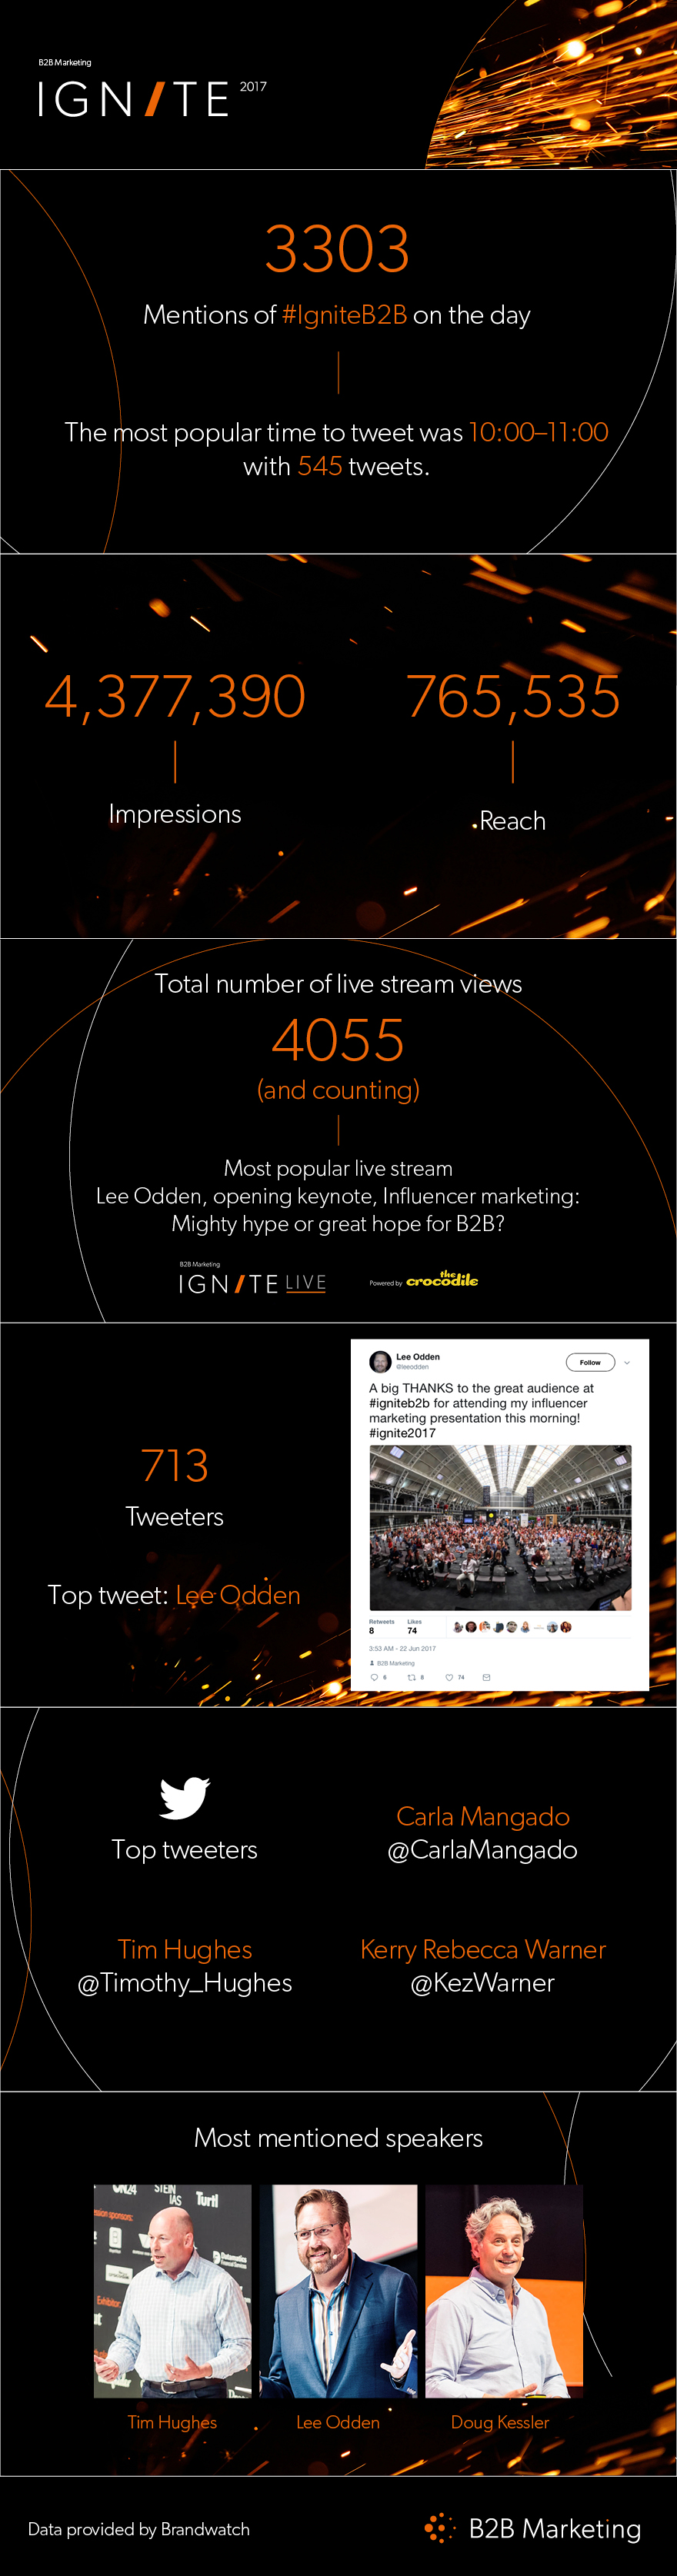 Ignite 2017 Infographic key social media stats